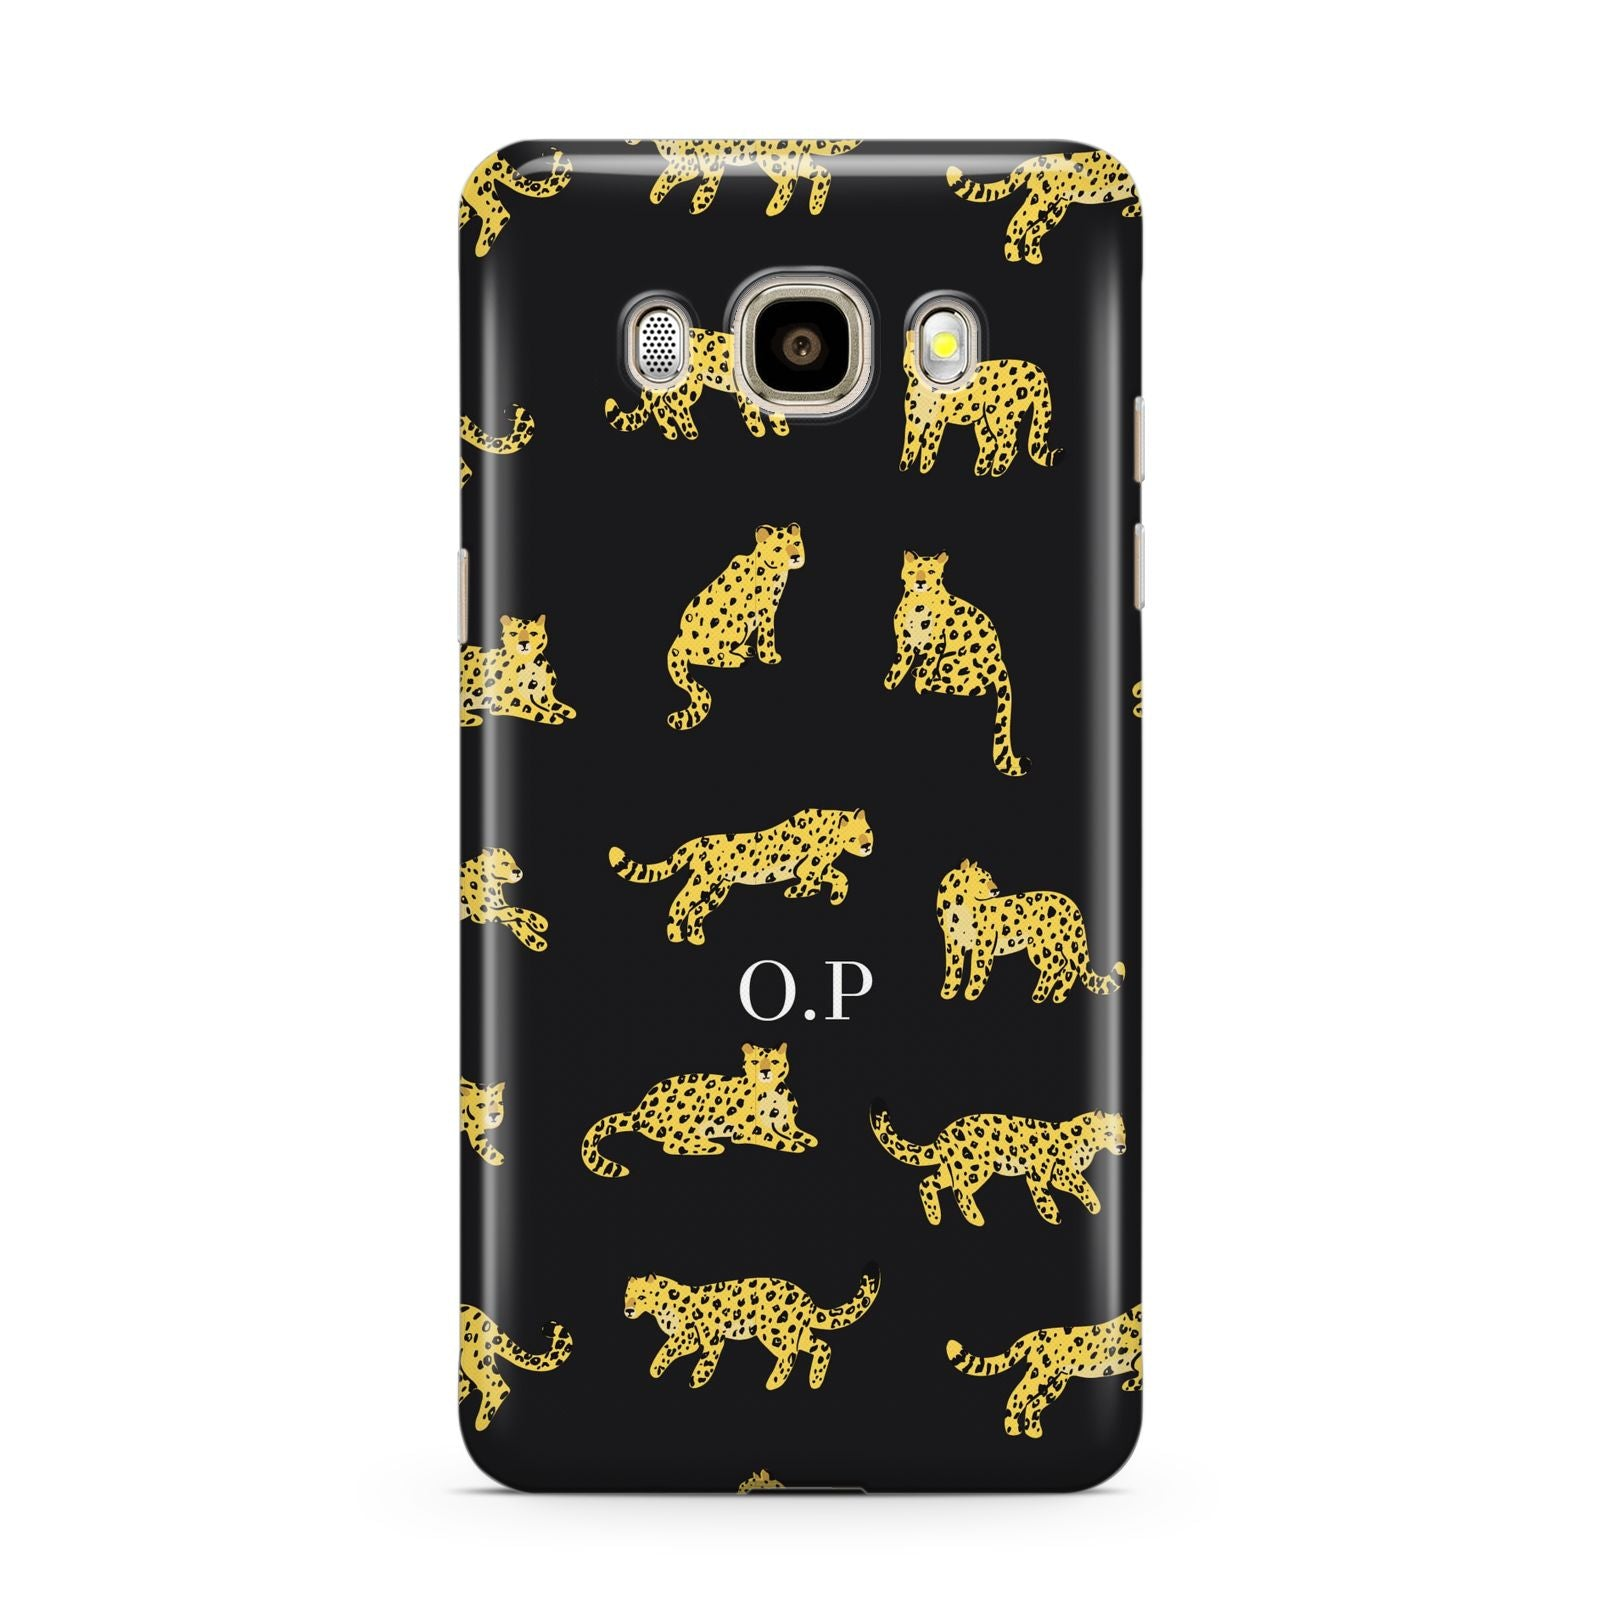 Prowling Leopard Samsung Galaxy J7 2016 Case on gold phone